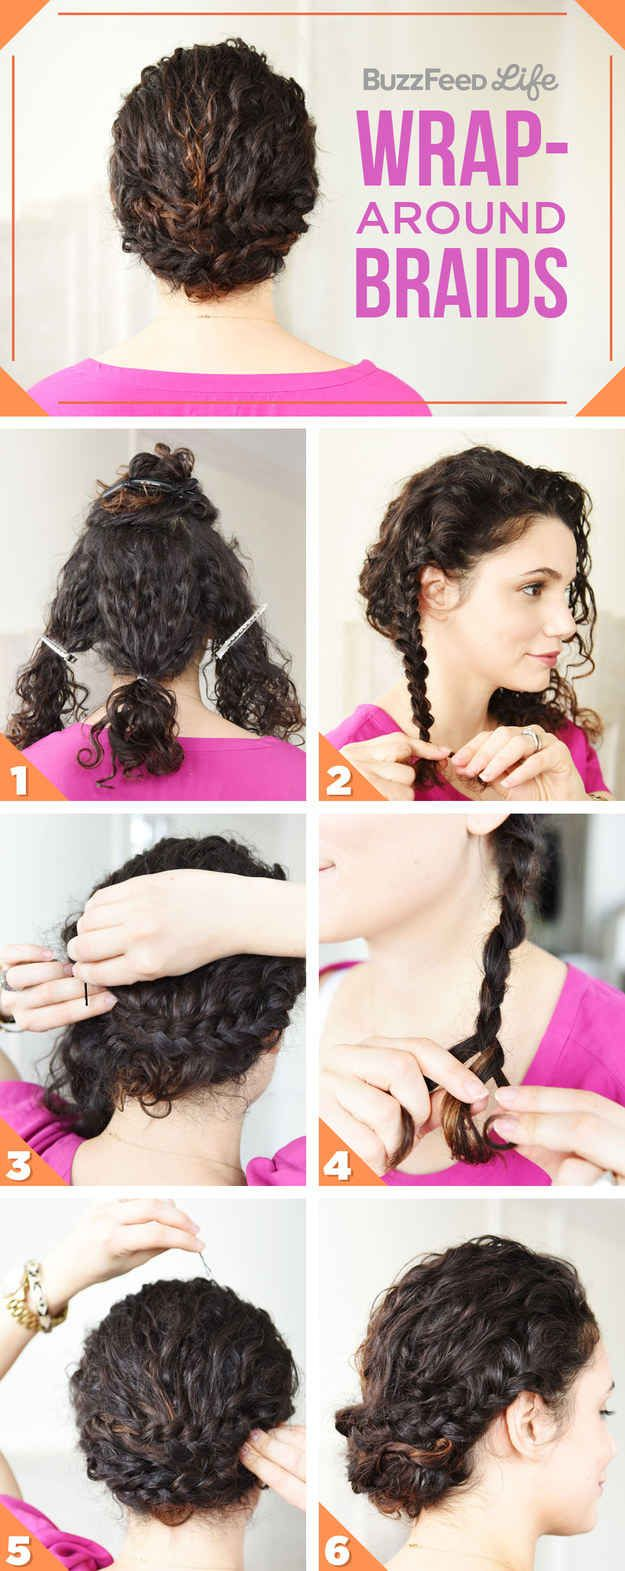 Easy up dos for curly hair. Most of these I could actually see myself doing successfully.